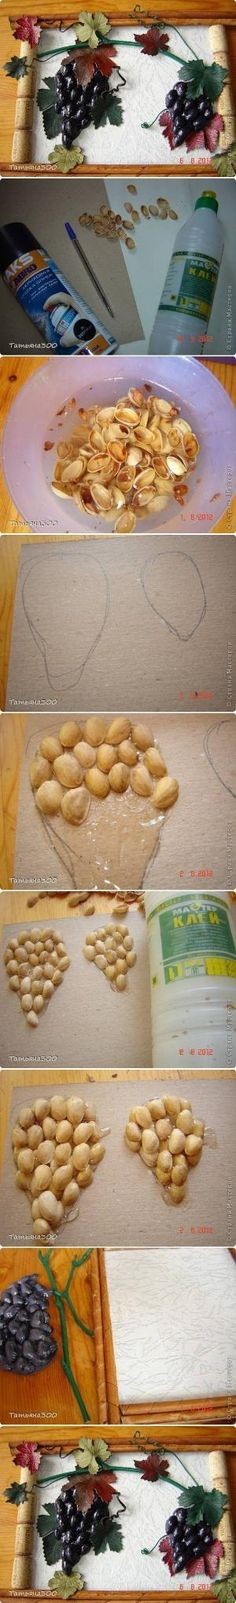 tutorial - diyforever- made with wine corks and shells of pistachios